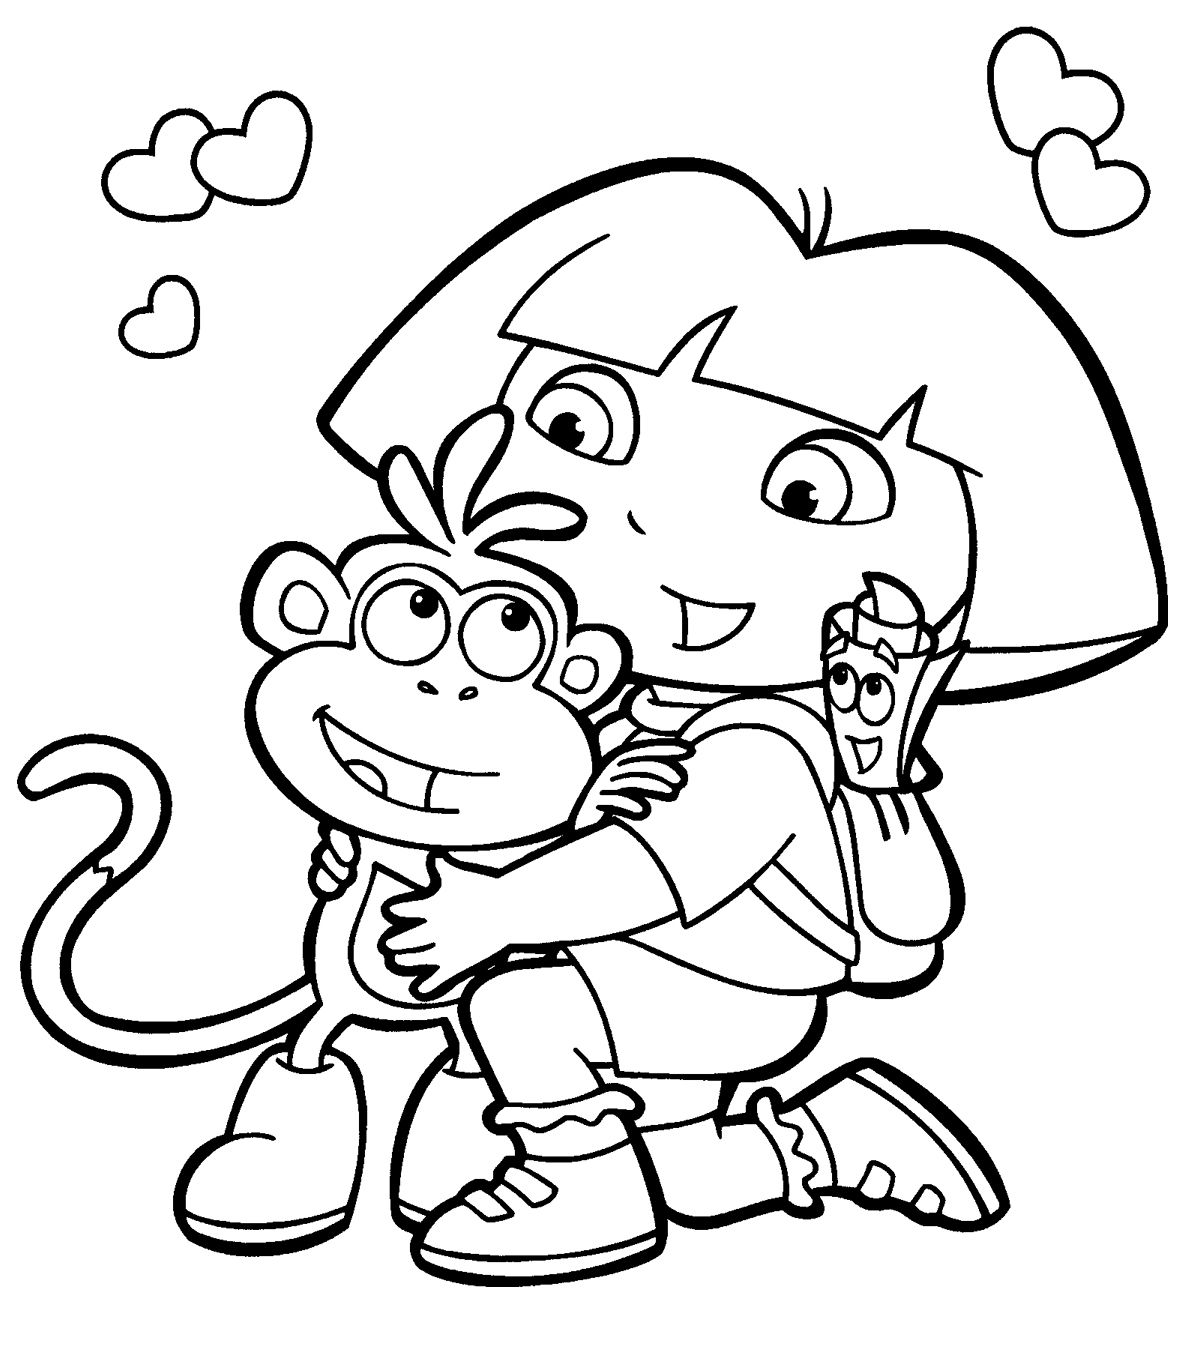 Nick jr summer coloring pages - Coloring Book Pages Free Nickjr S Dora The Explorer Coloring Book Printables